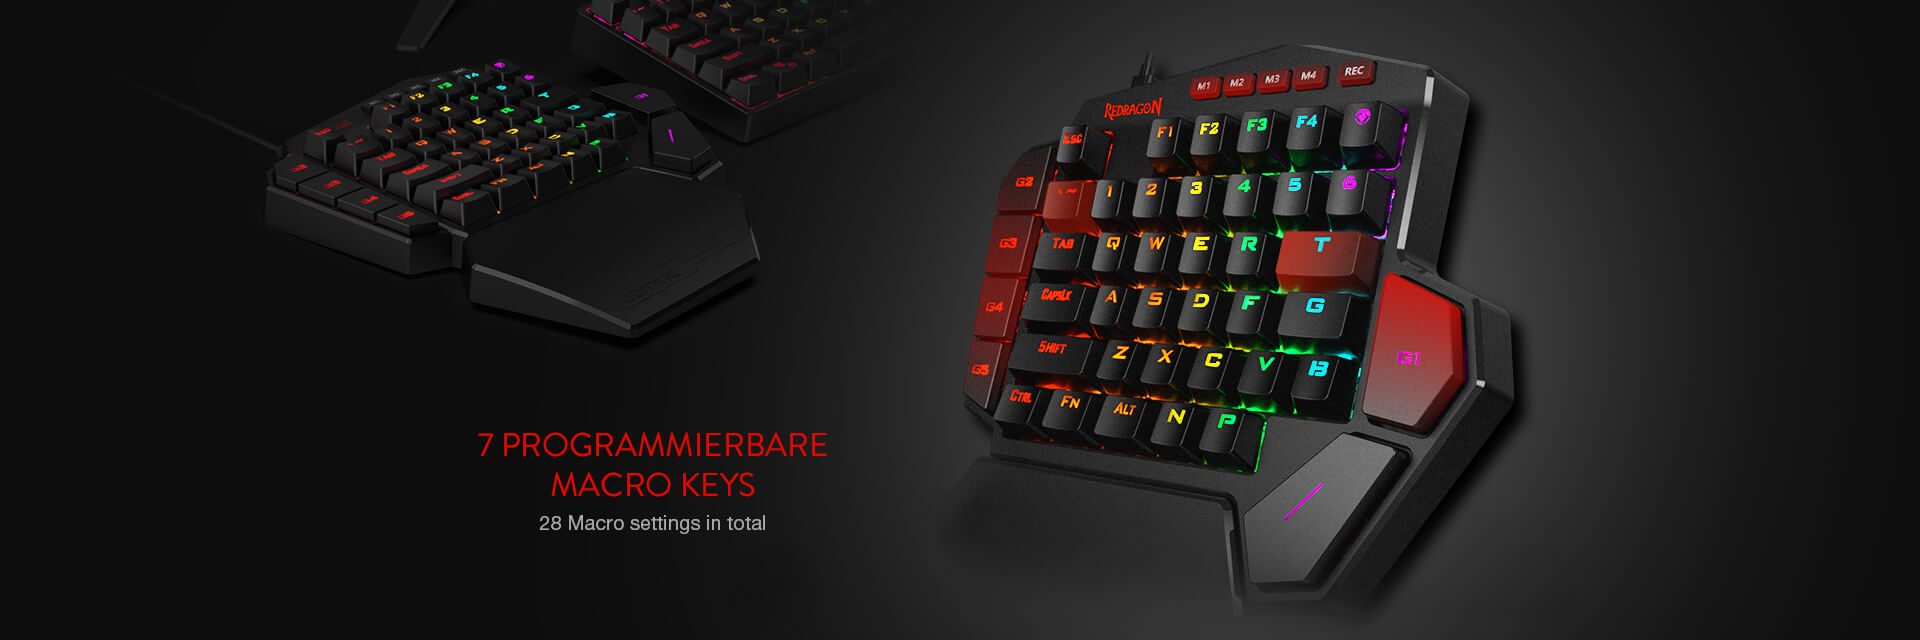 redragon k585 one-handed keyboard